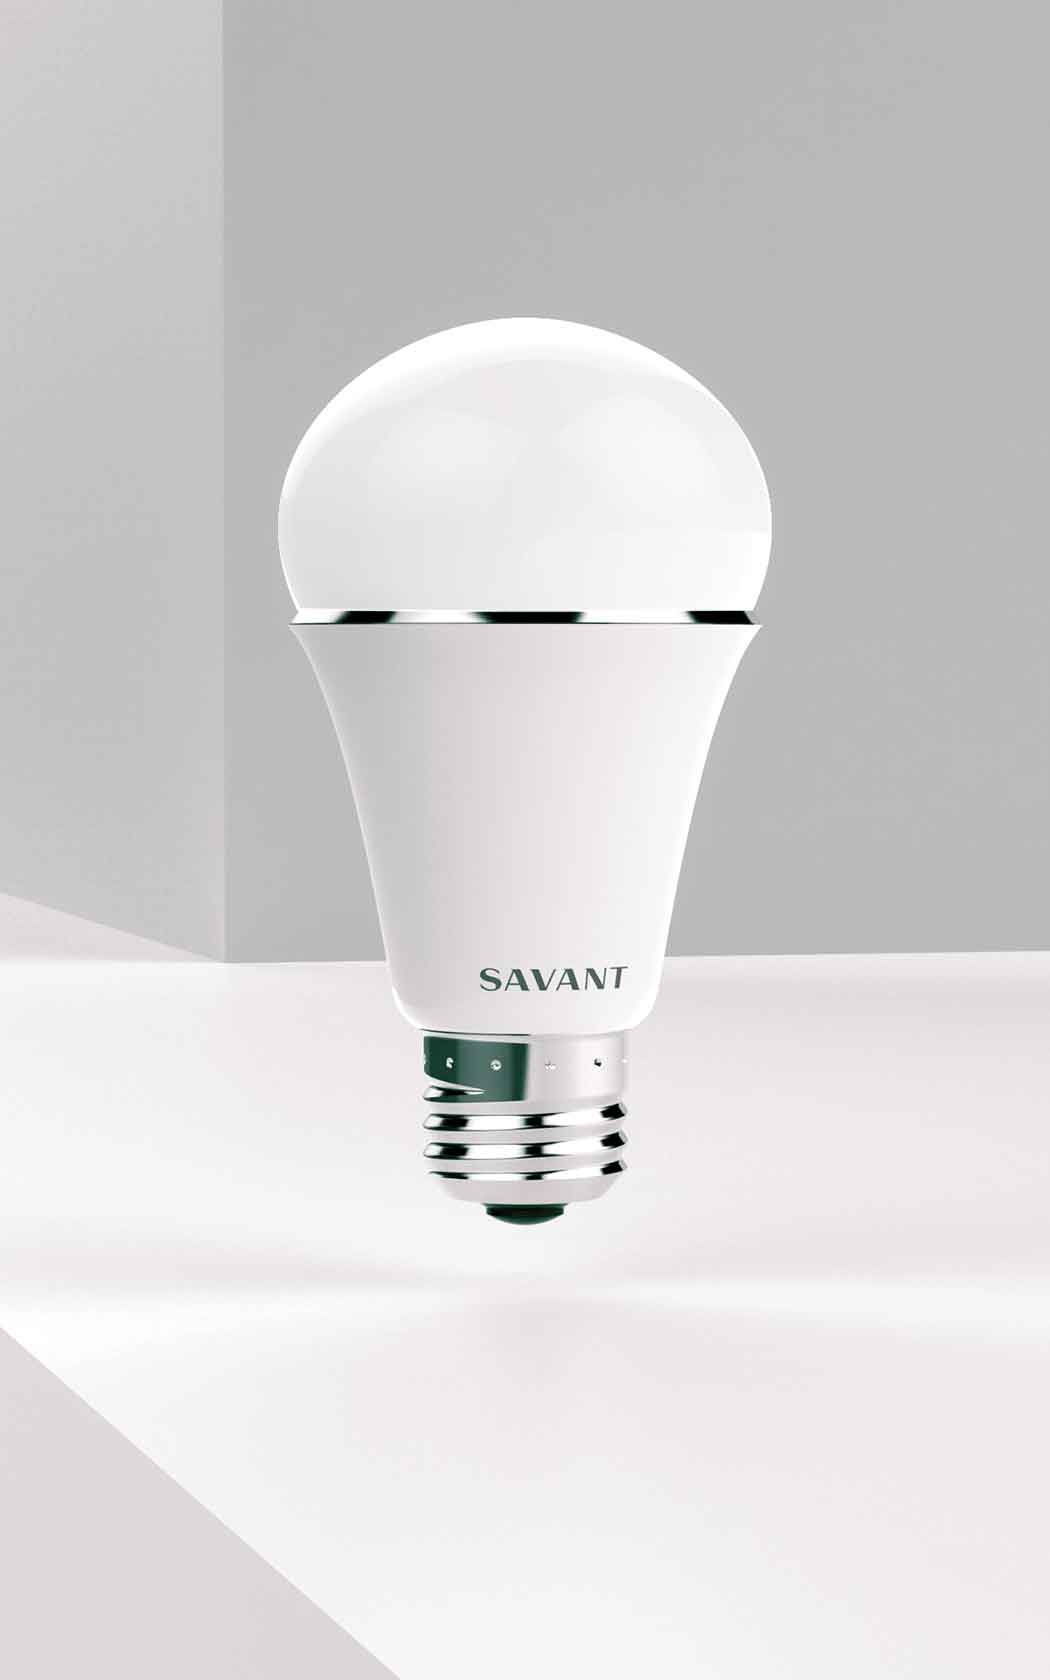 3. Savant Smart Light LED Lighting Bulb -